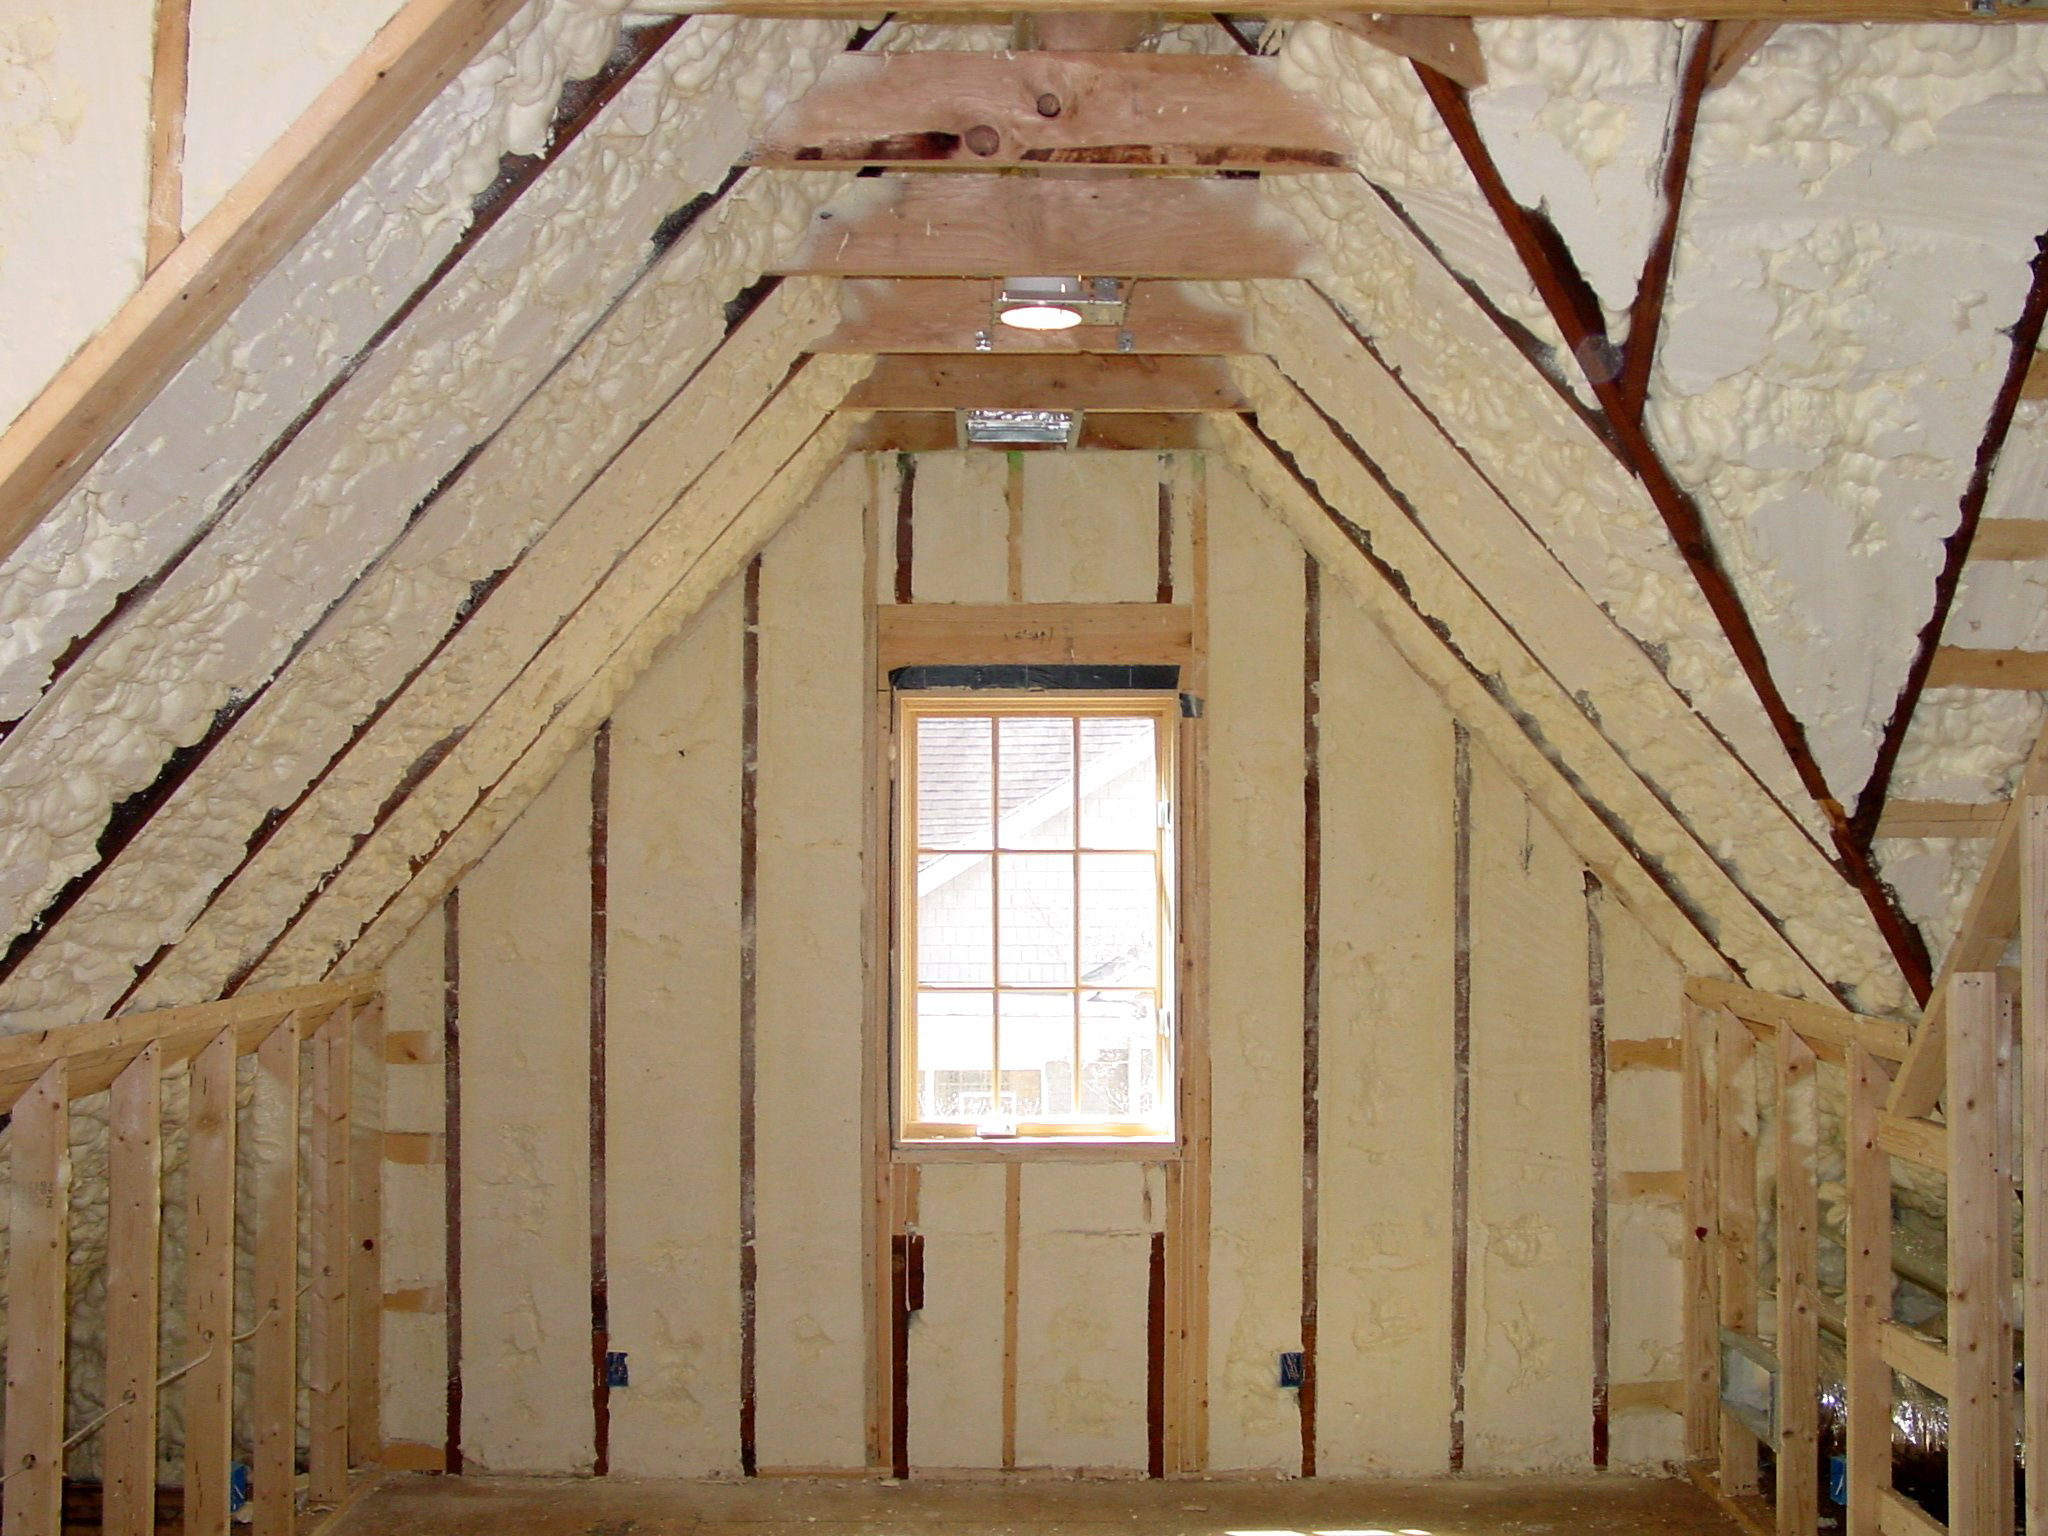 Icynene Spray Foam Insulation Can Help Improve Comfort In